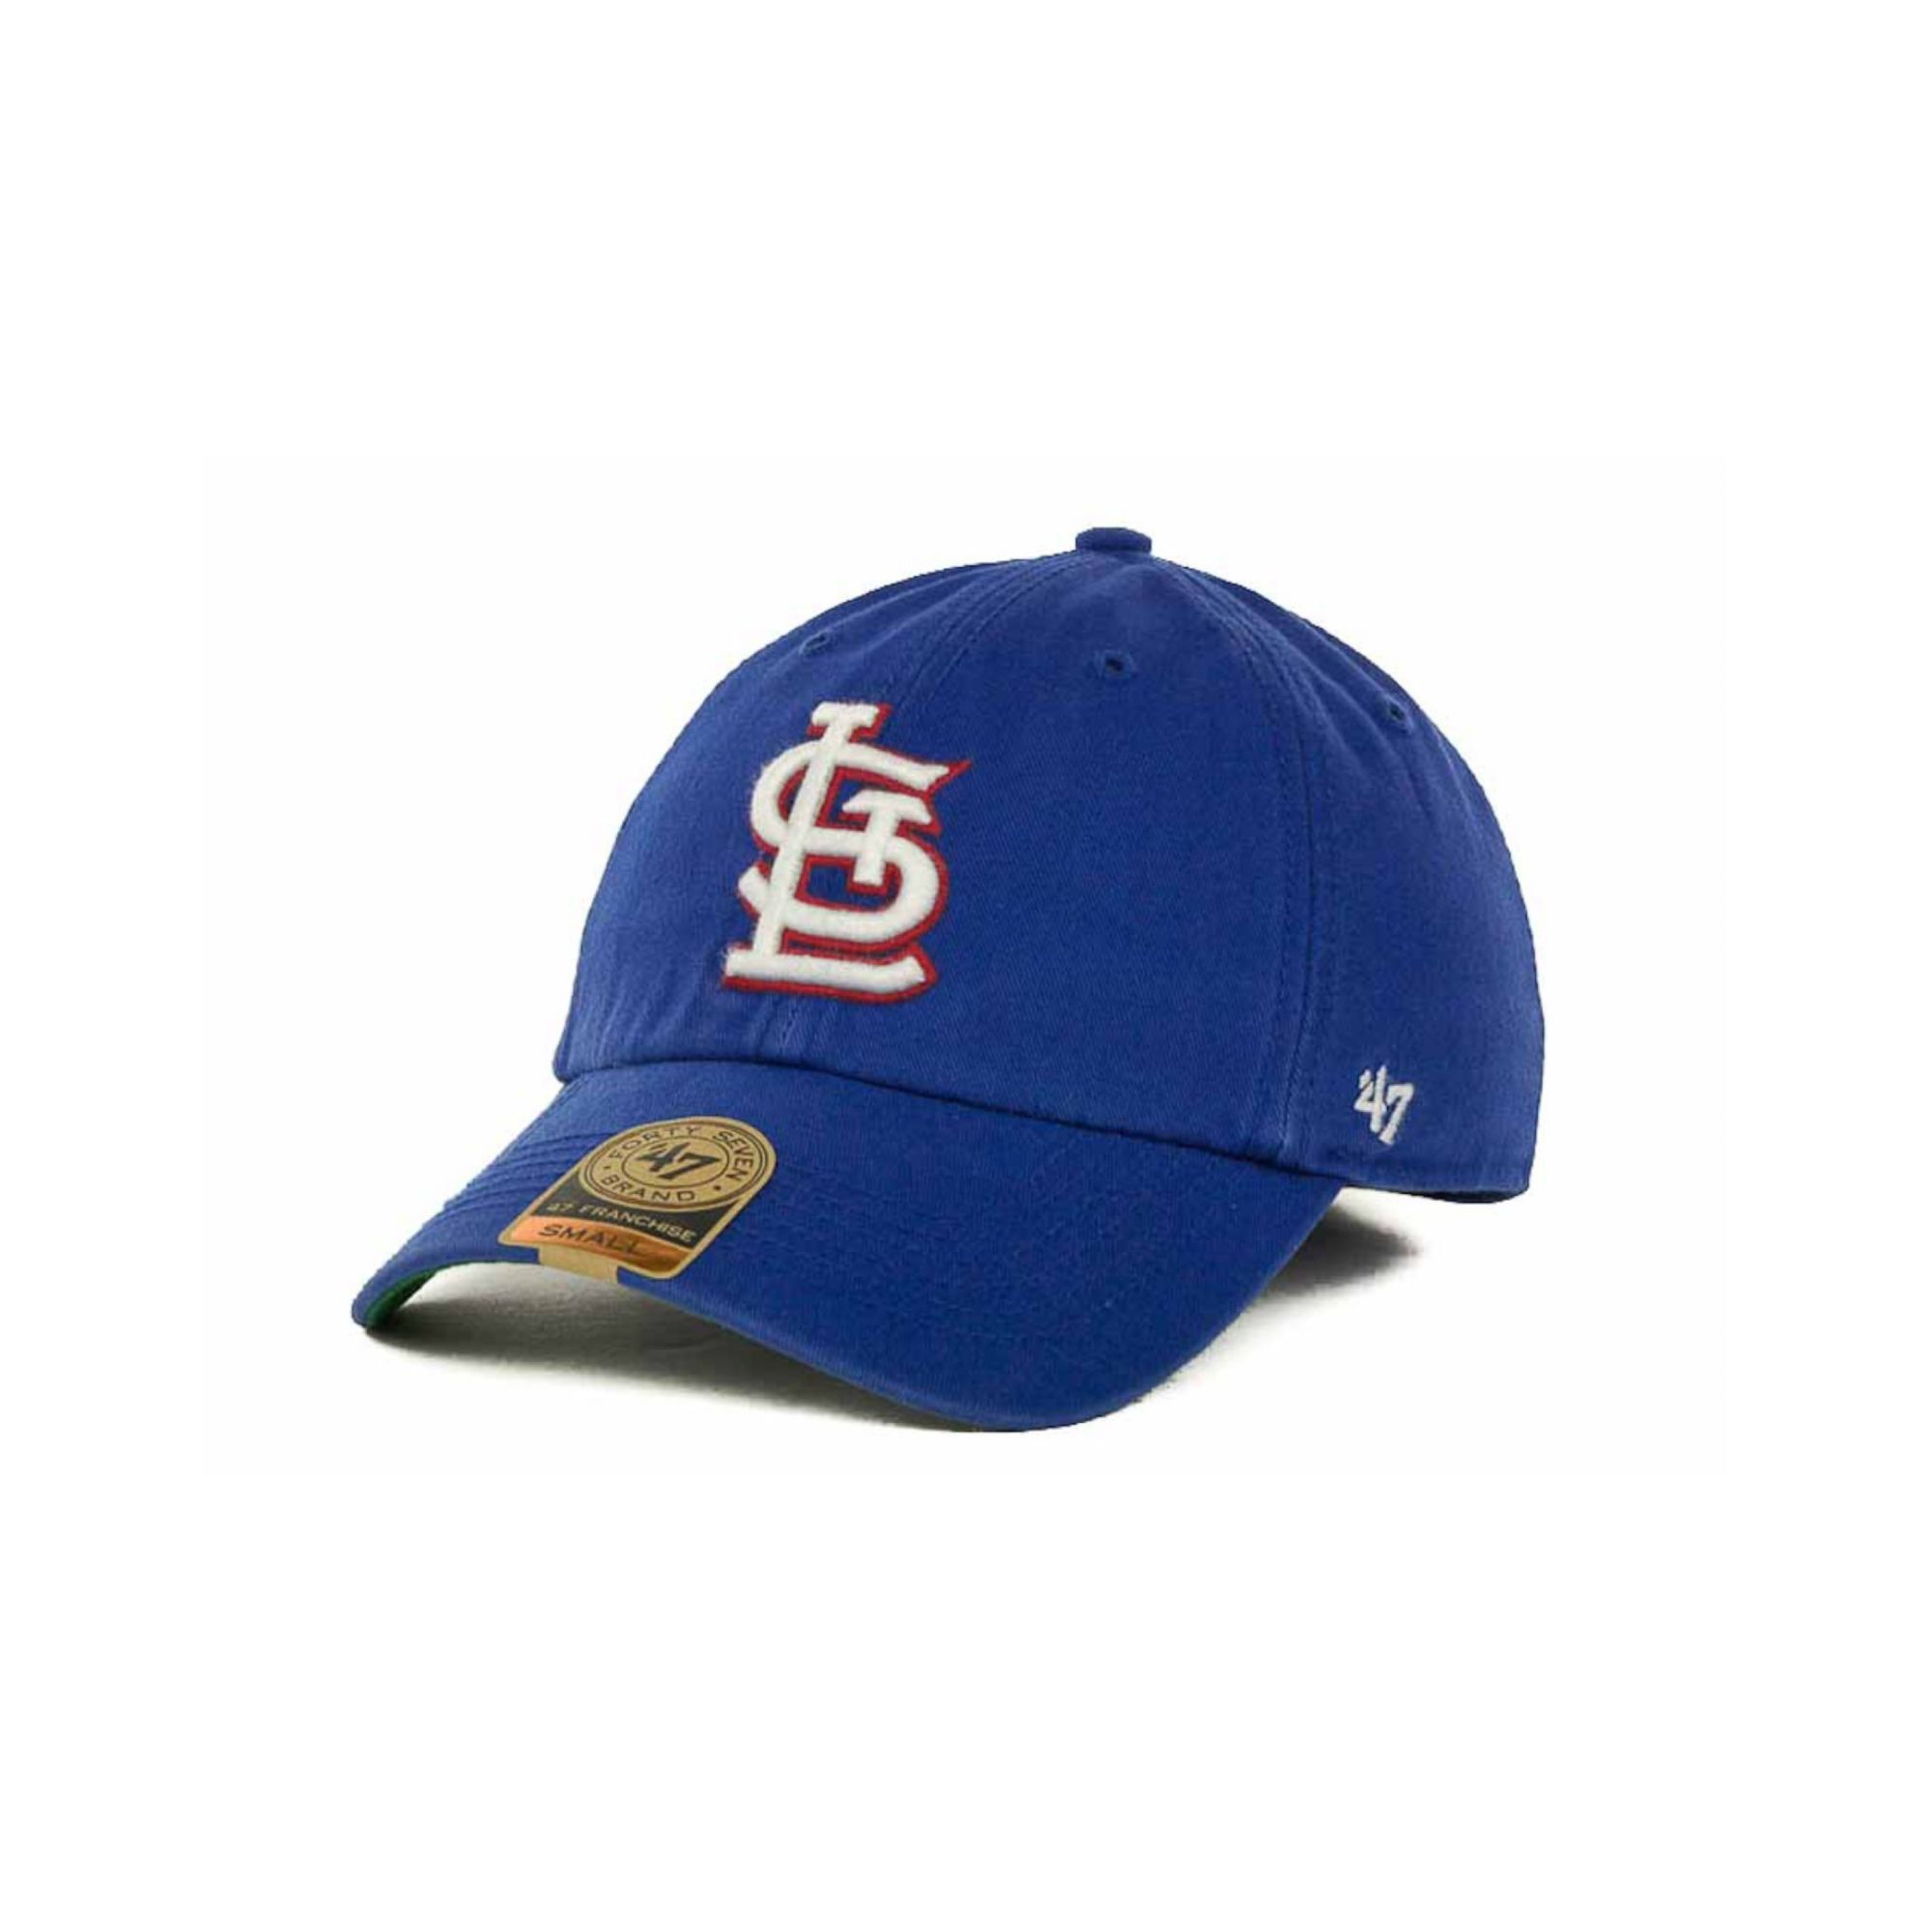 47 Brand St Louis Cardinals Mlb 47 Franchise Cap In